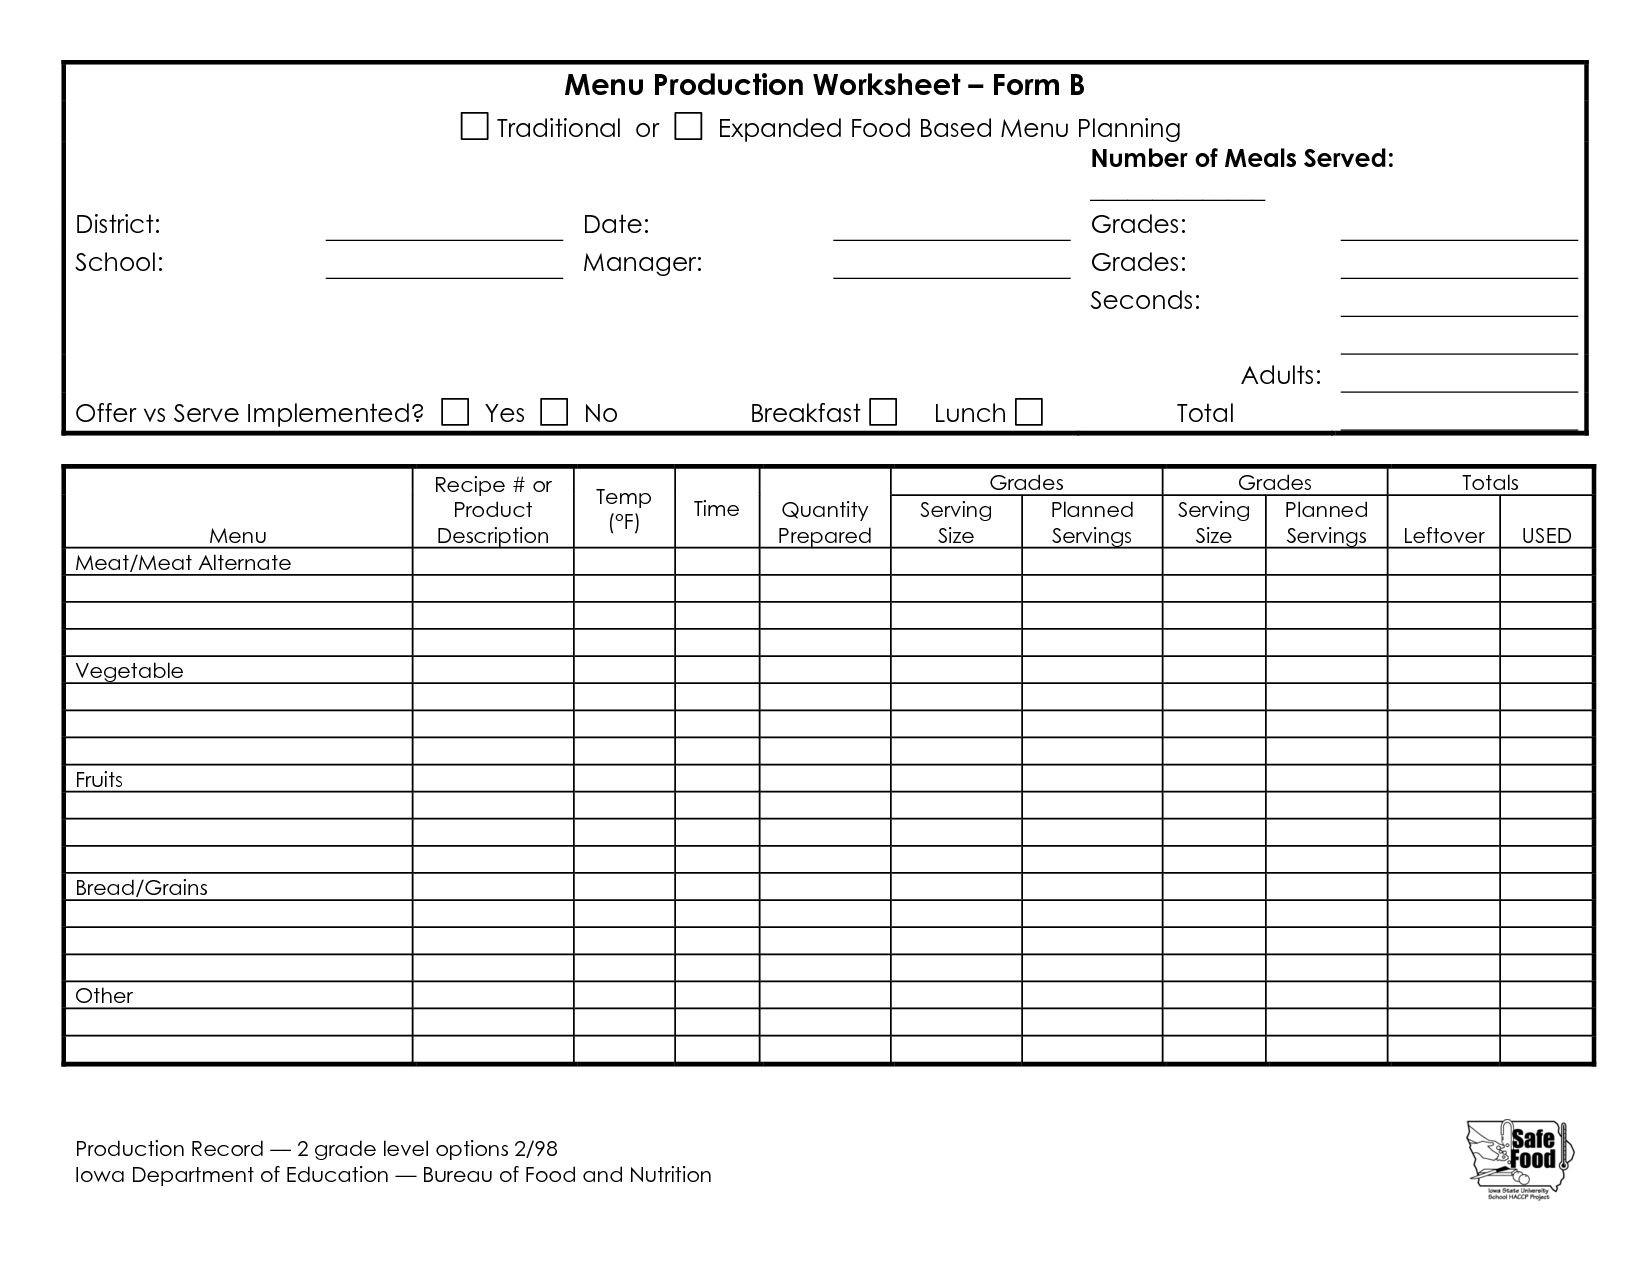 Production Worksheet Blank